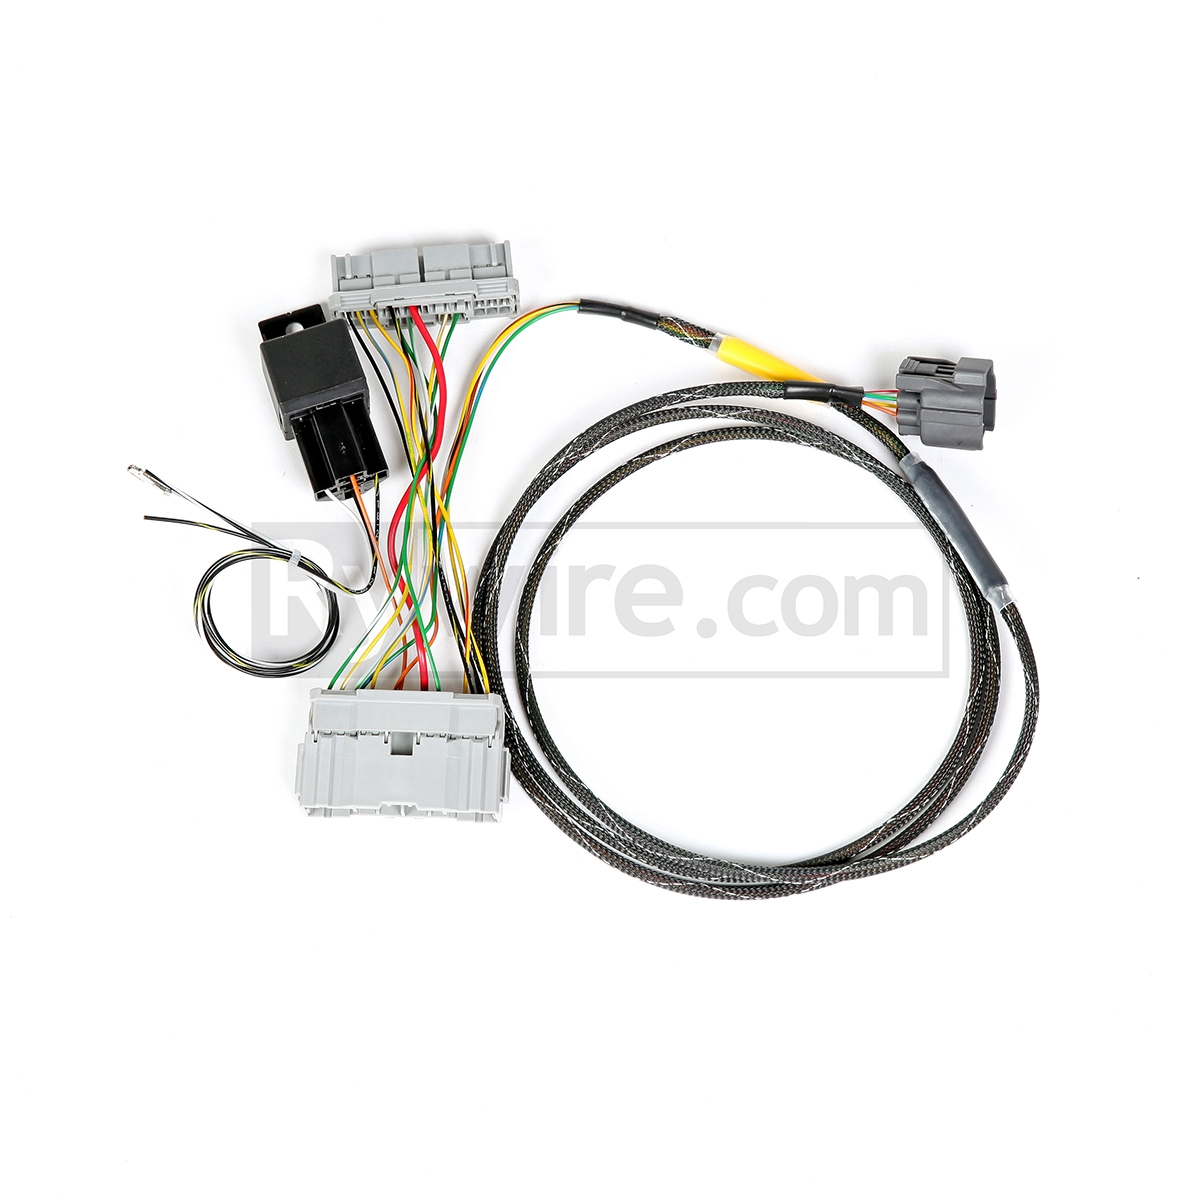 small resolution of rywire k series chassis adapter 1995 acura integra wiring harness 94 integra engine harness diagram